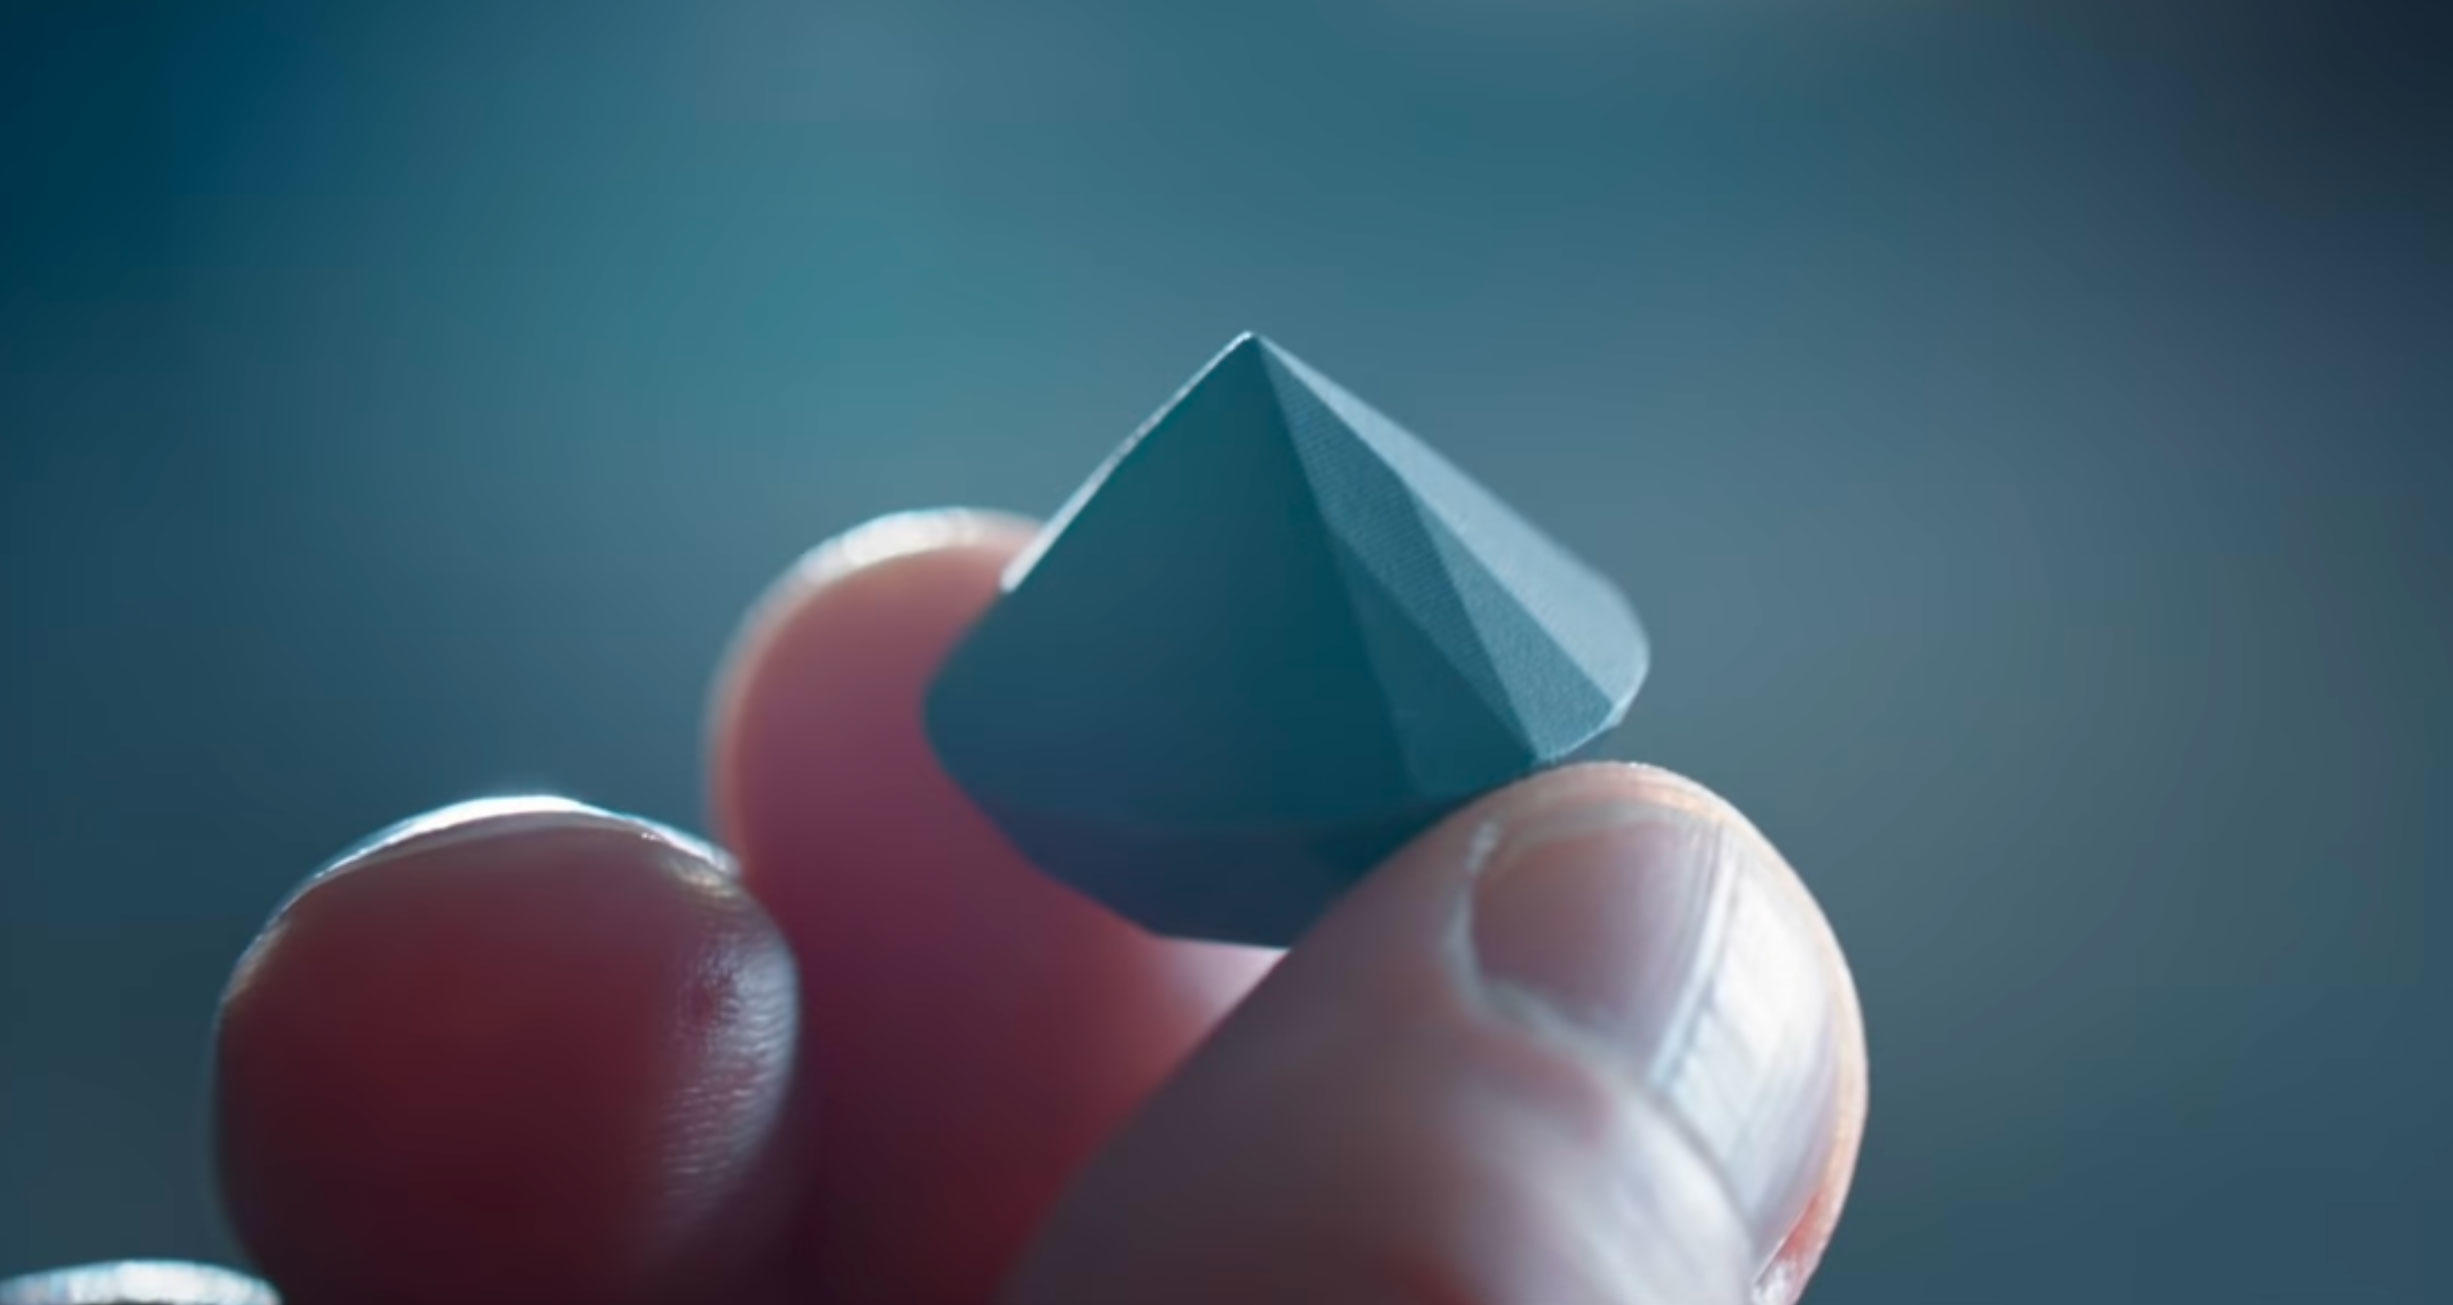 Sandvik showed off this 3D printed diamond shape, but it's made from diamond powder in a polymer composite, not pure crystalline diamond.